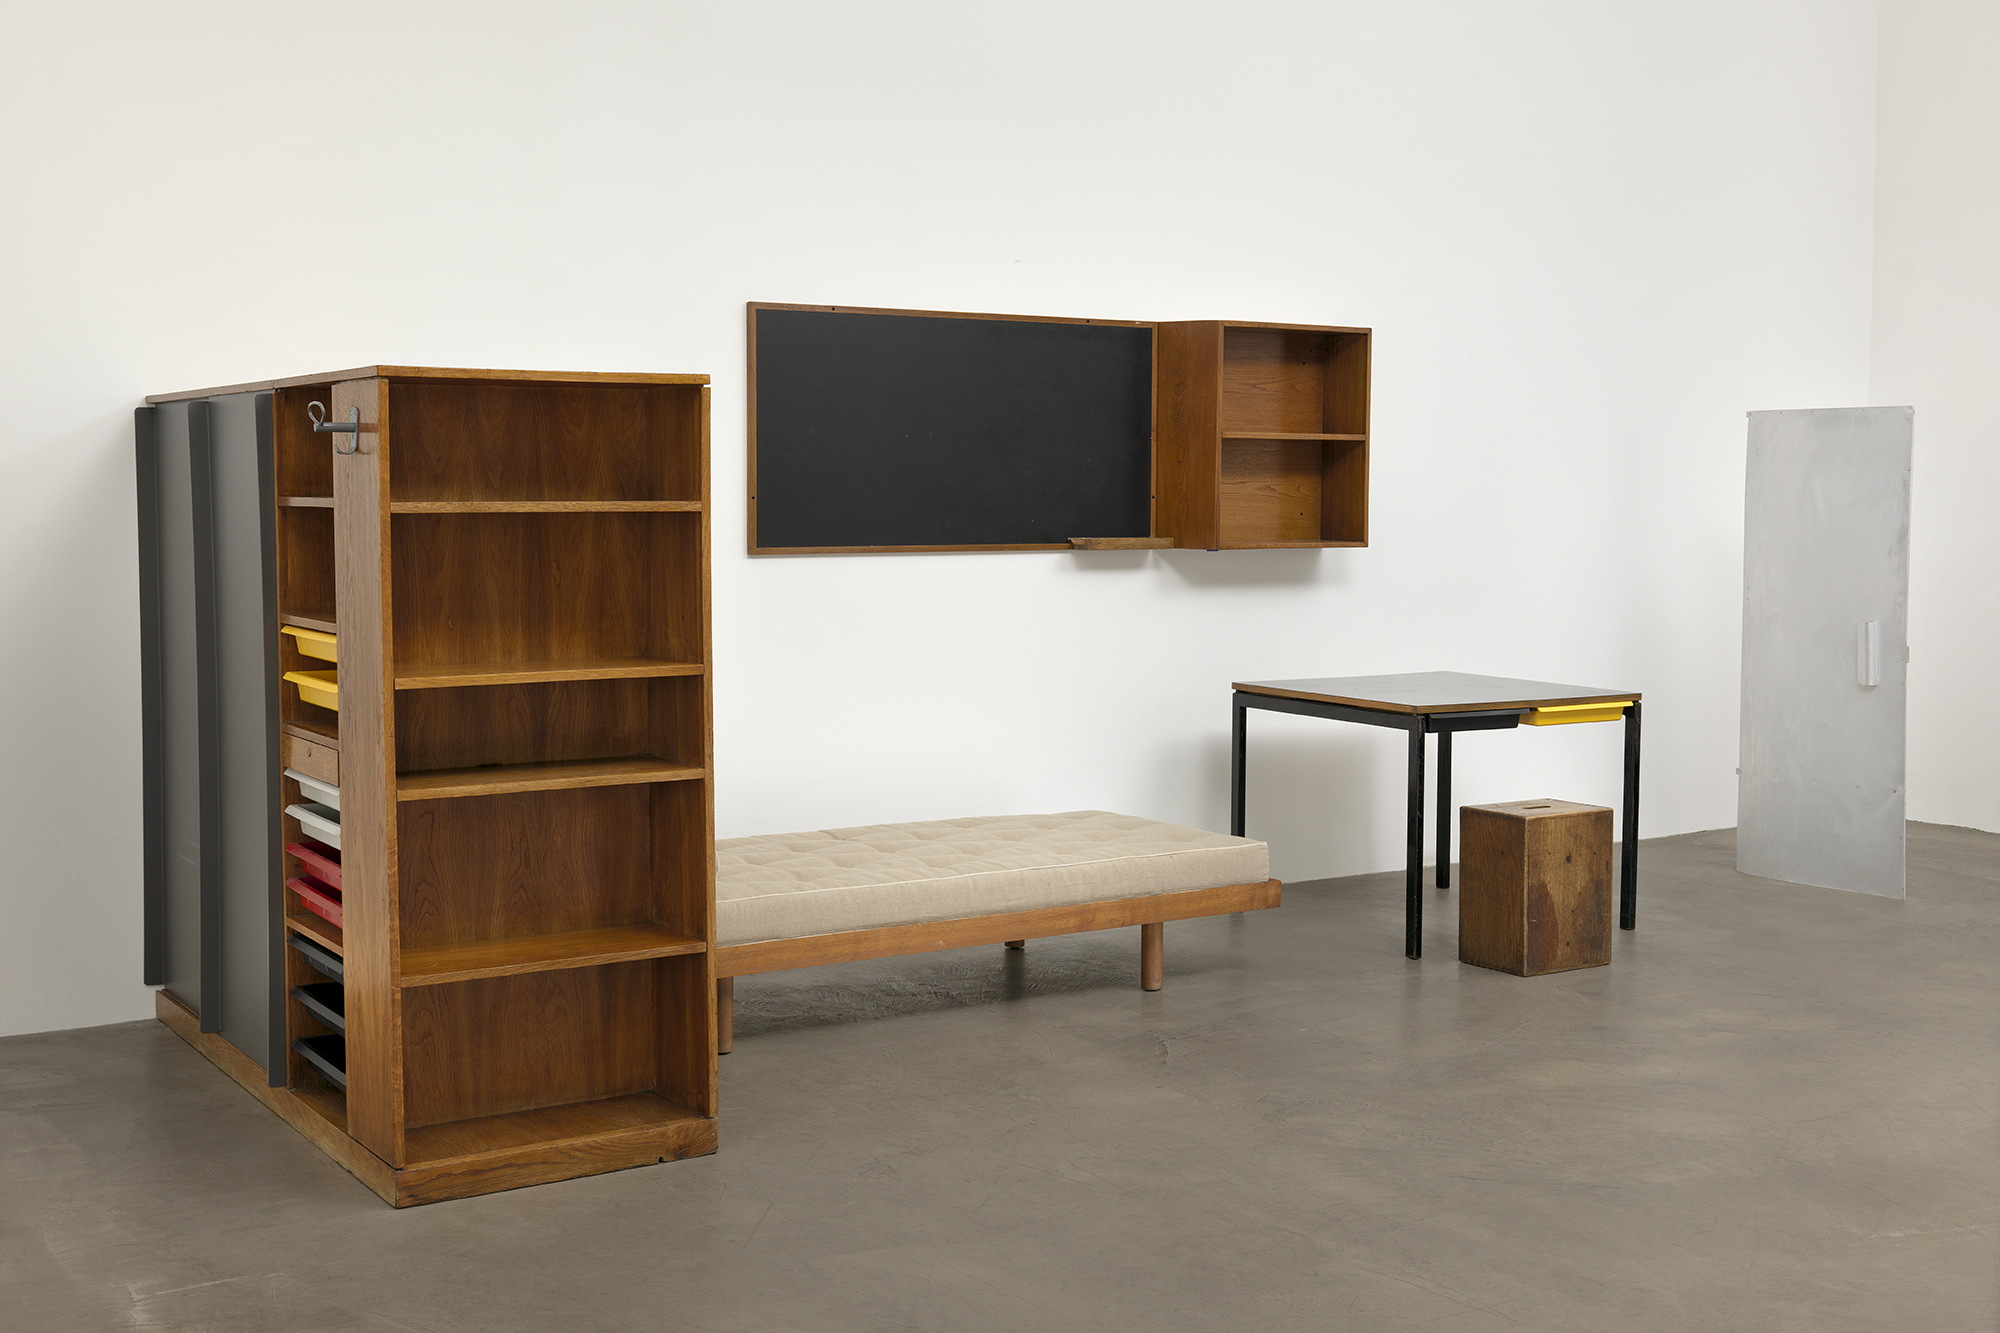 Mid Century Modern Bookcase Moma Considers What Makes A Modern Interior | Architect